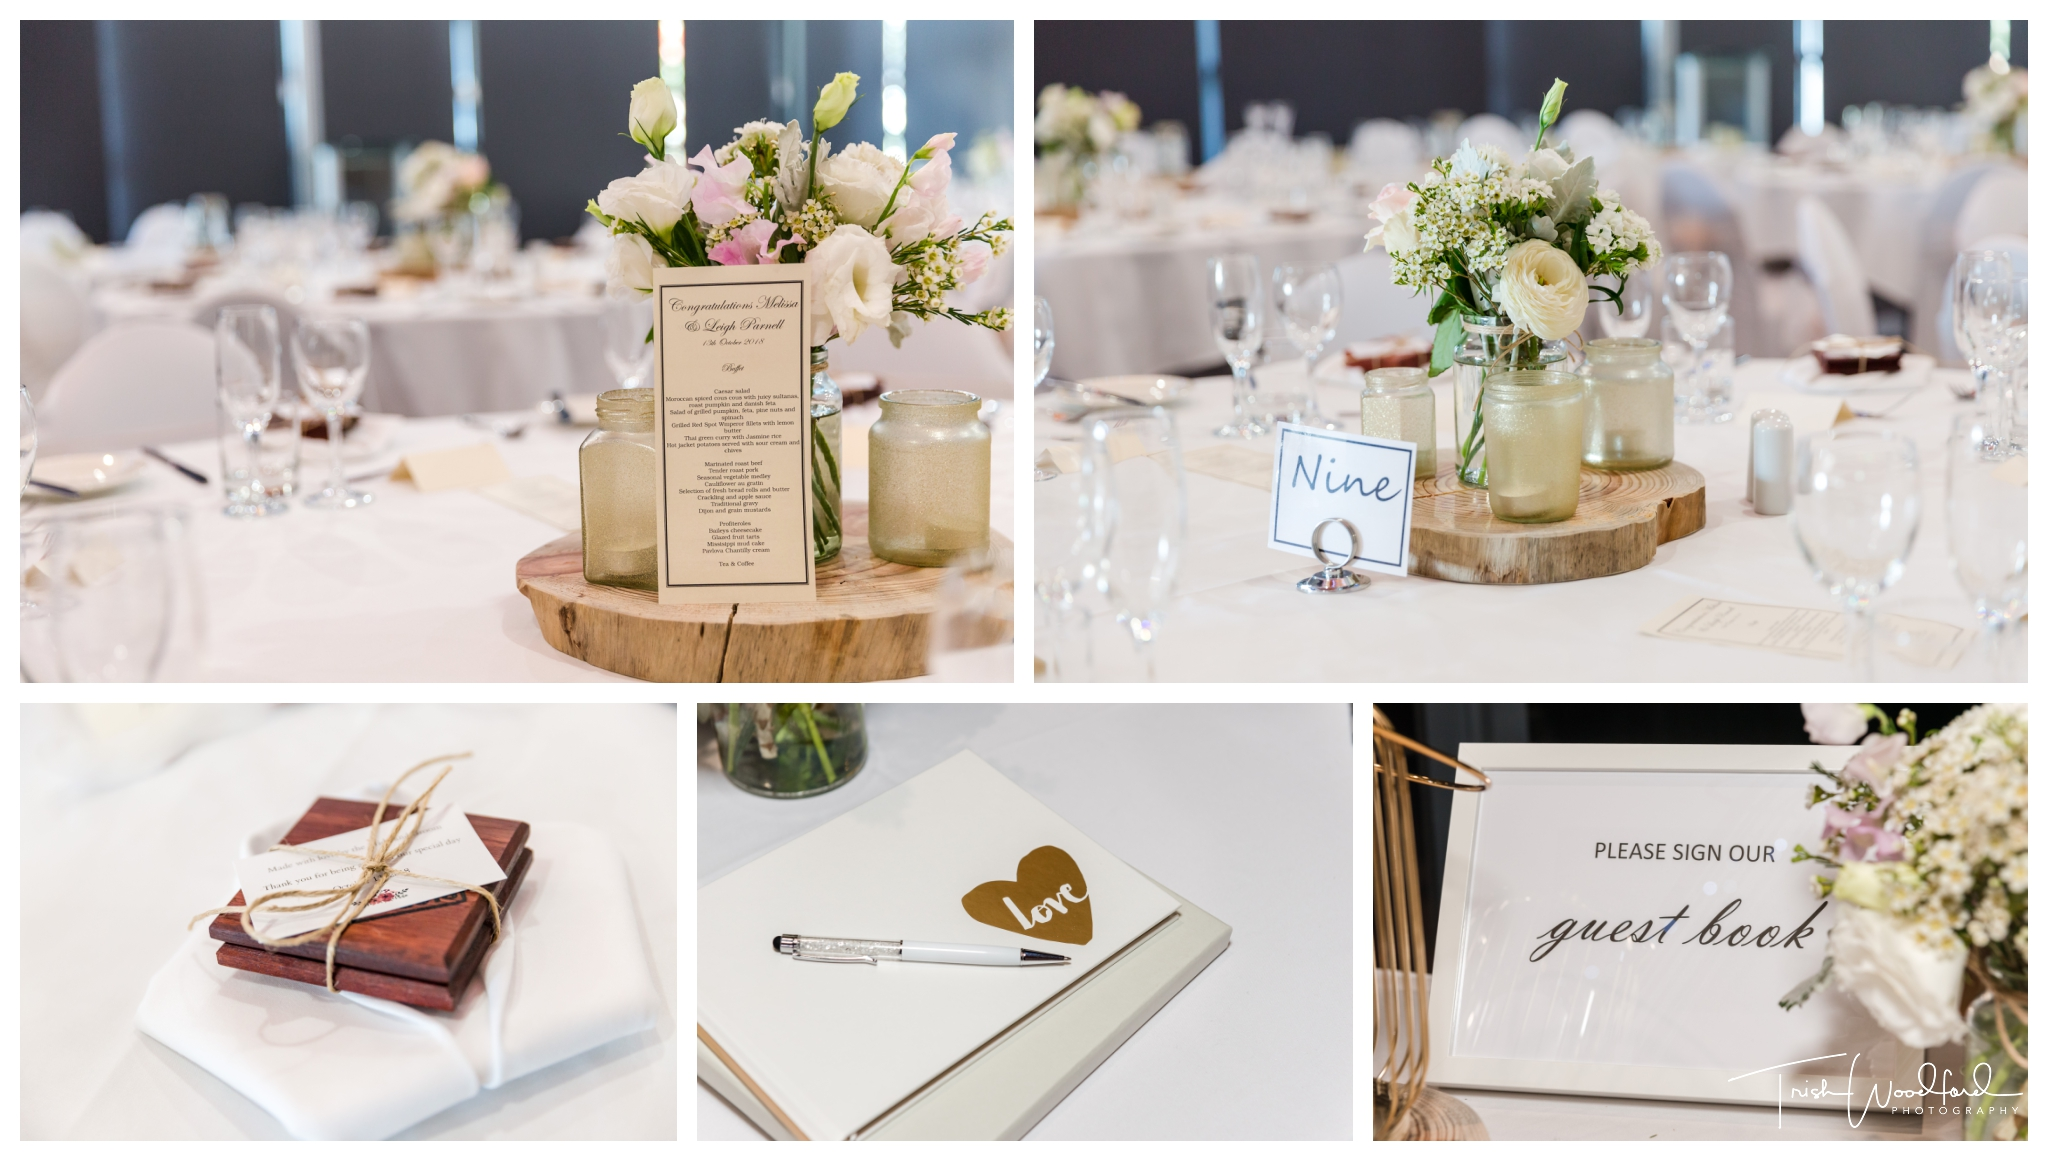 Mandurah Quay Resort Wedding Reception